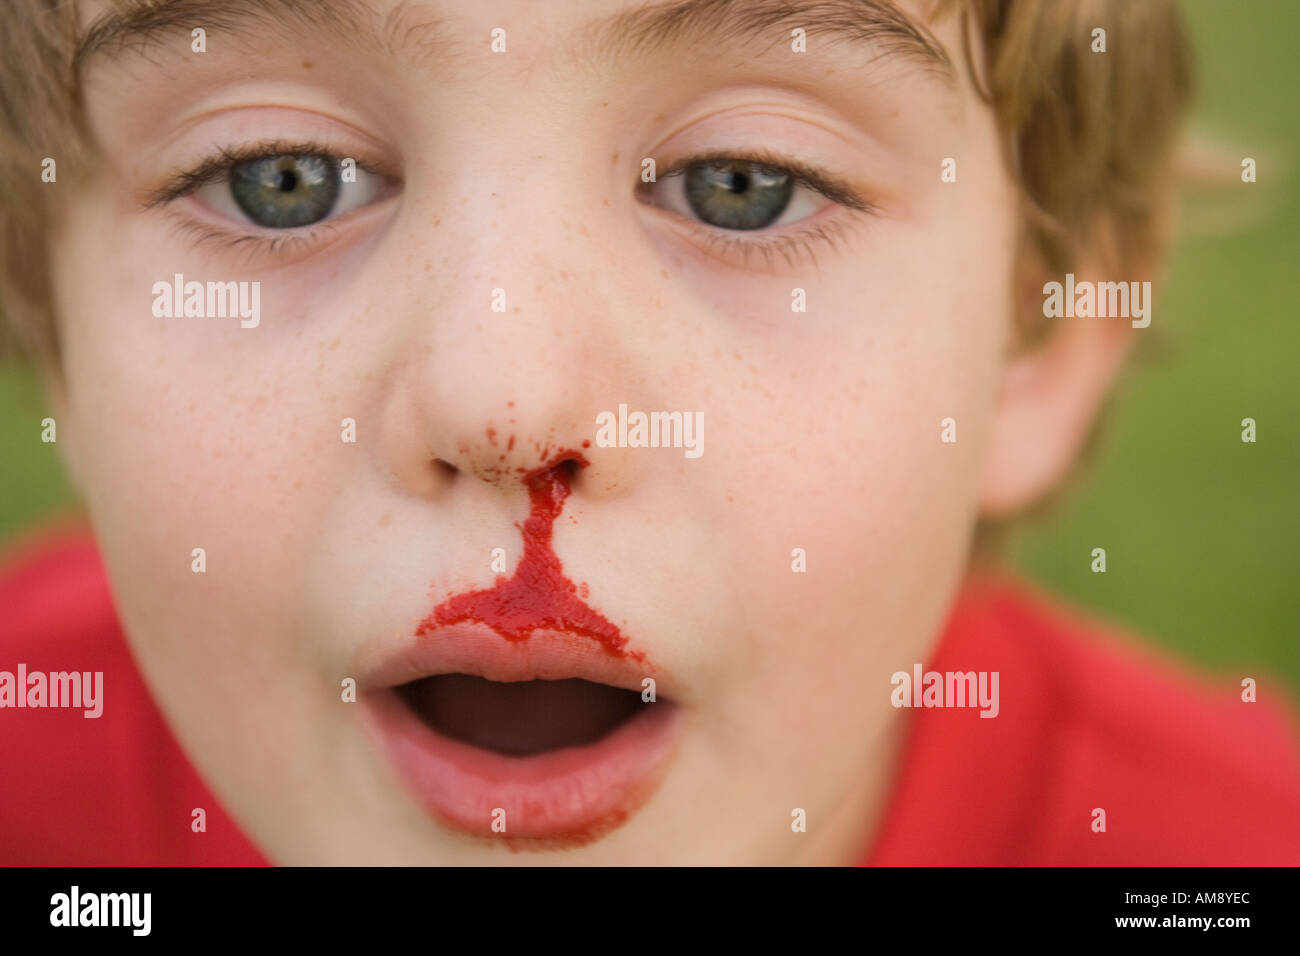 how to stop a nose bleed on a child